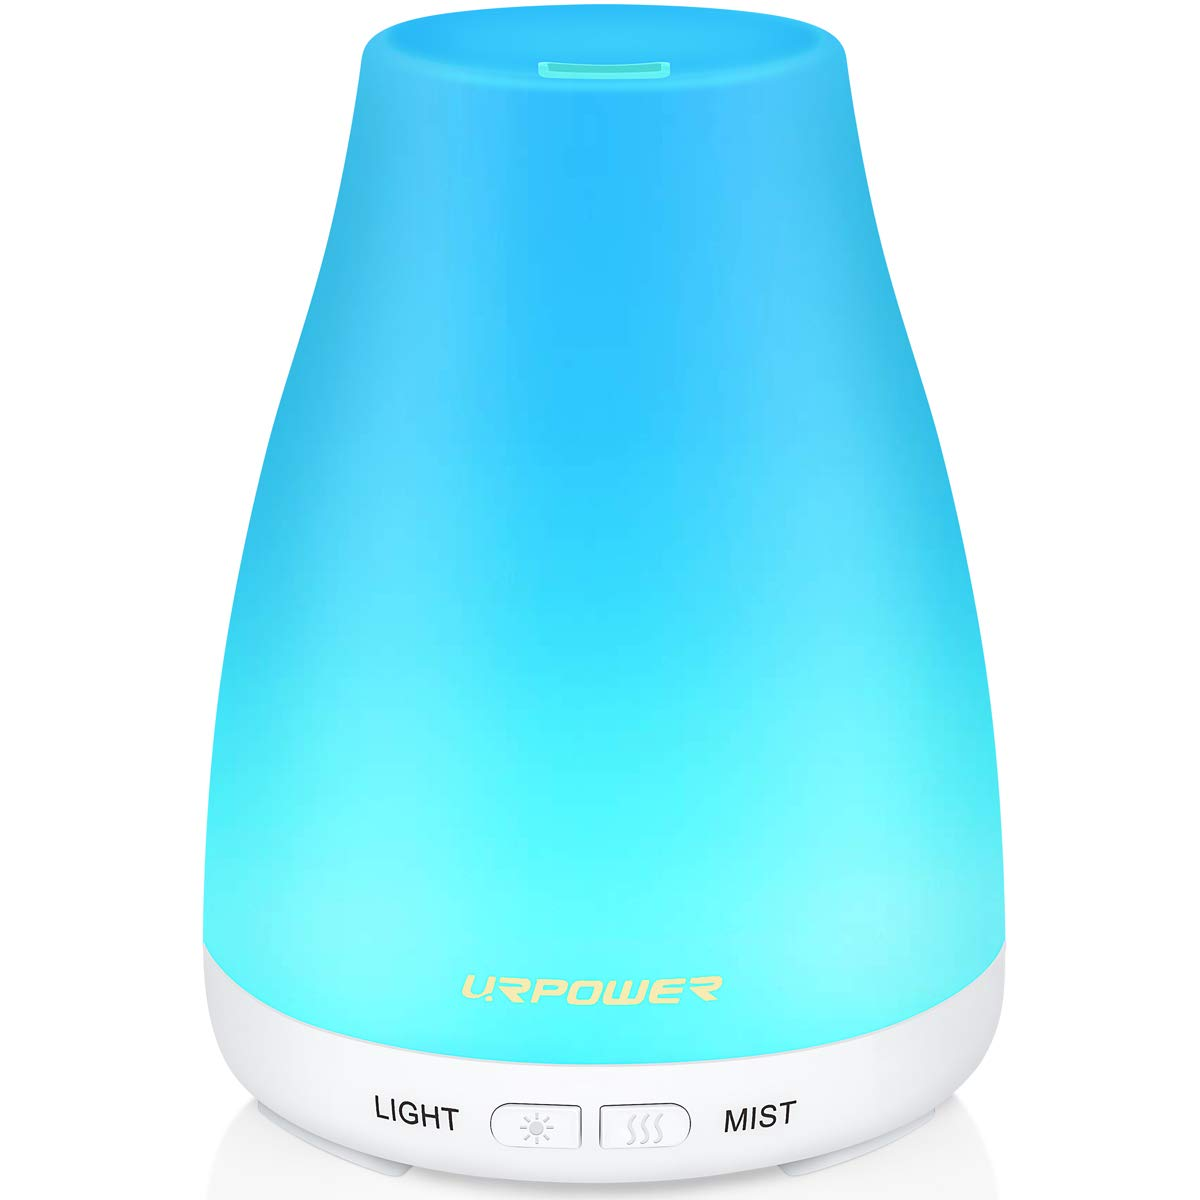 URPOWER 2nd Version Essential Oil Diffuser Aroma Essential Oil Cool Mist Humidifier with Adjustable Mist Mode,Waterless Auto Shut-off and 7 Color LED Lights Changing for Home (White) by URPOWER